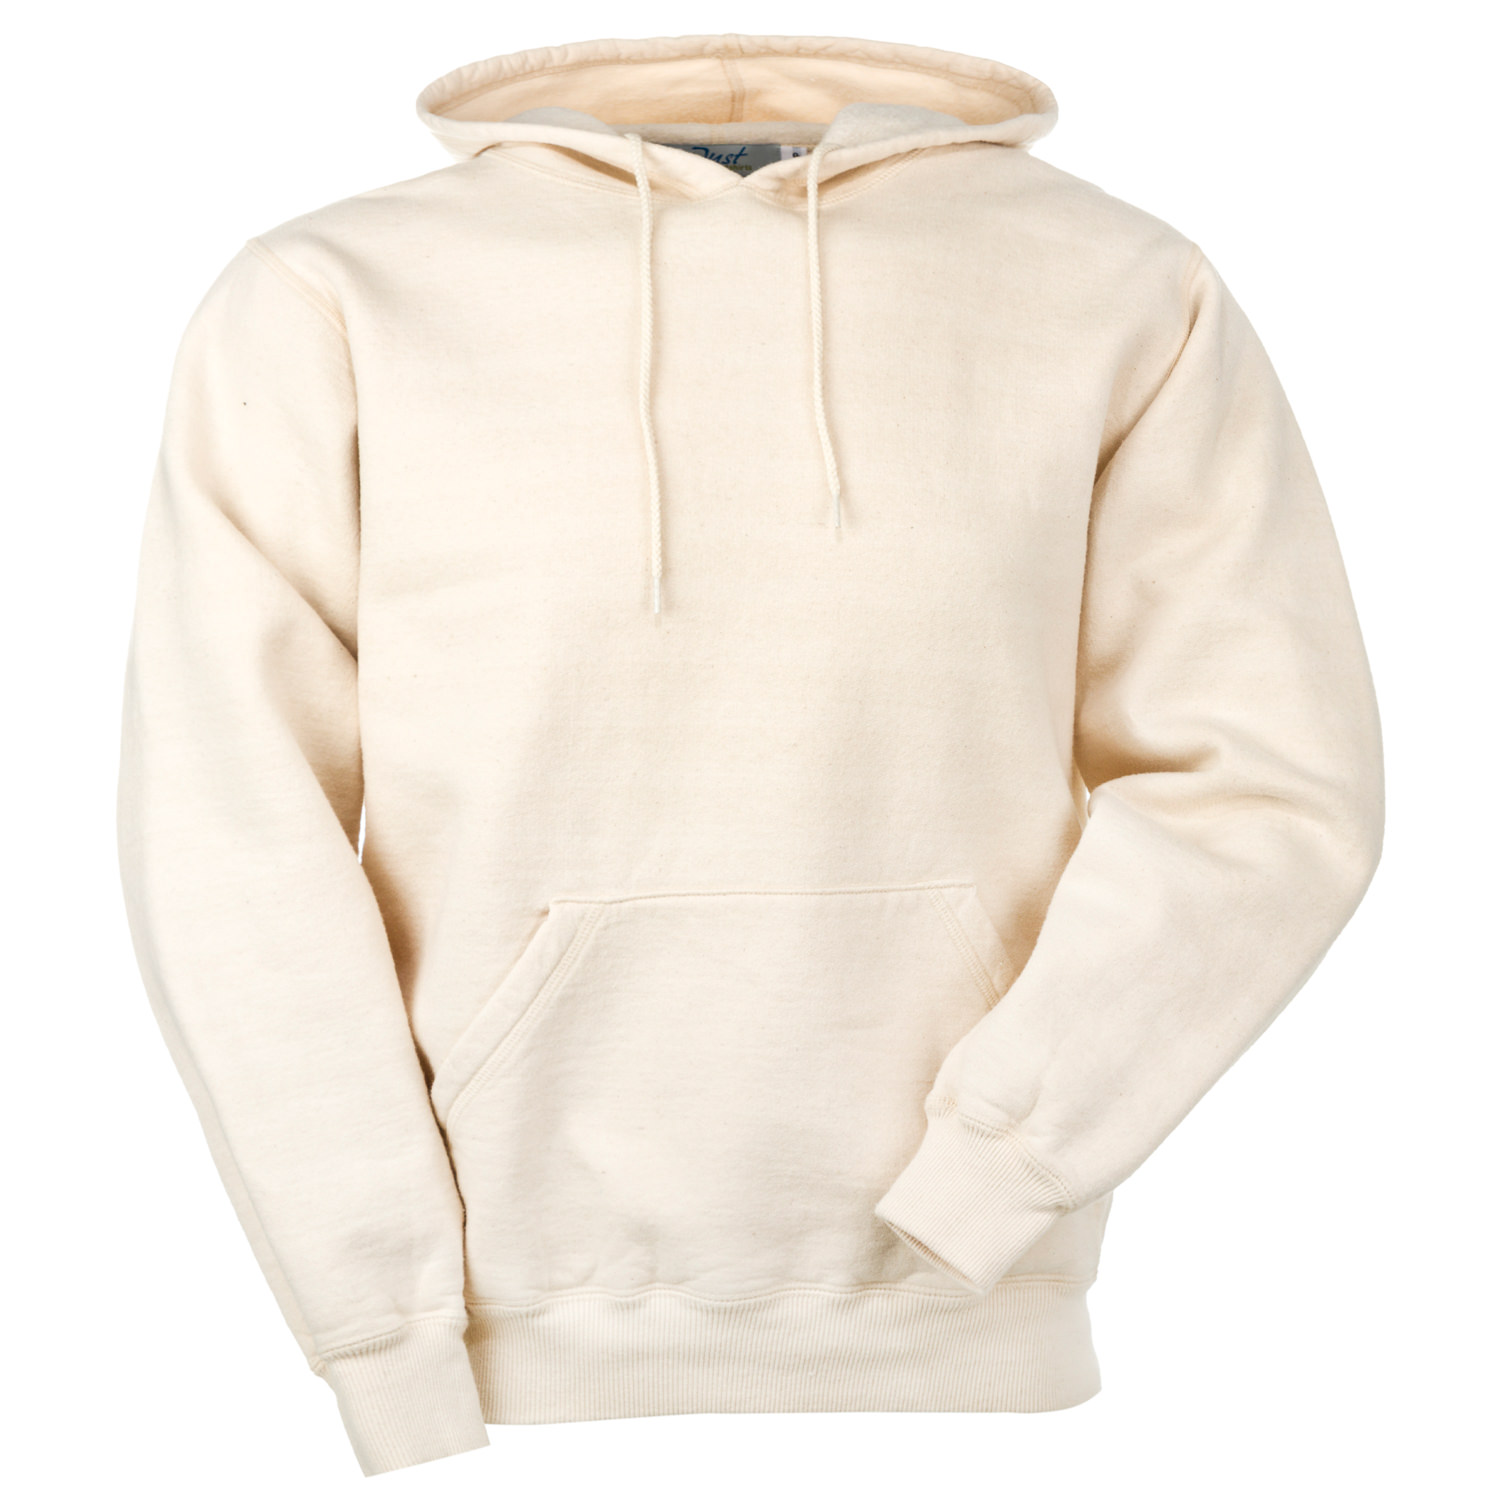 ca6a9471c2c Add to My Lists. Hooded Pullover Natural 100% Cotton